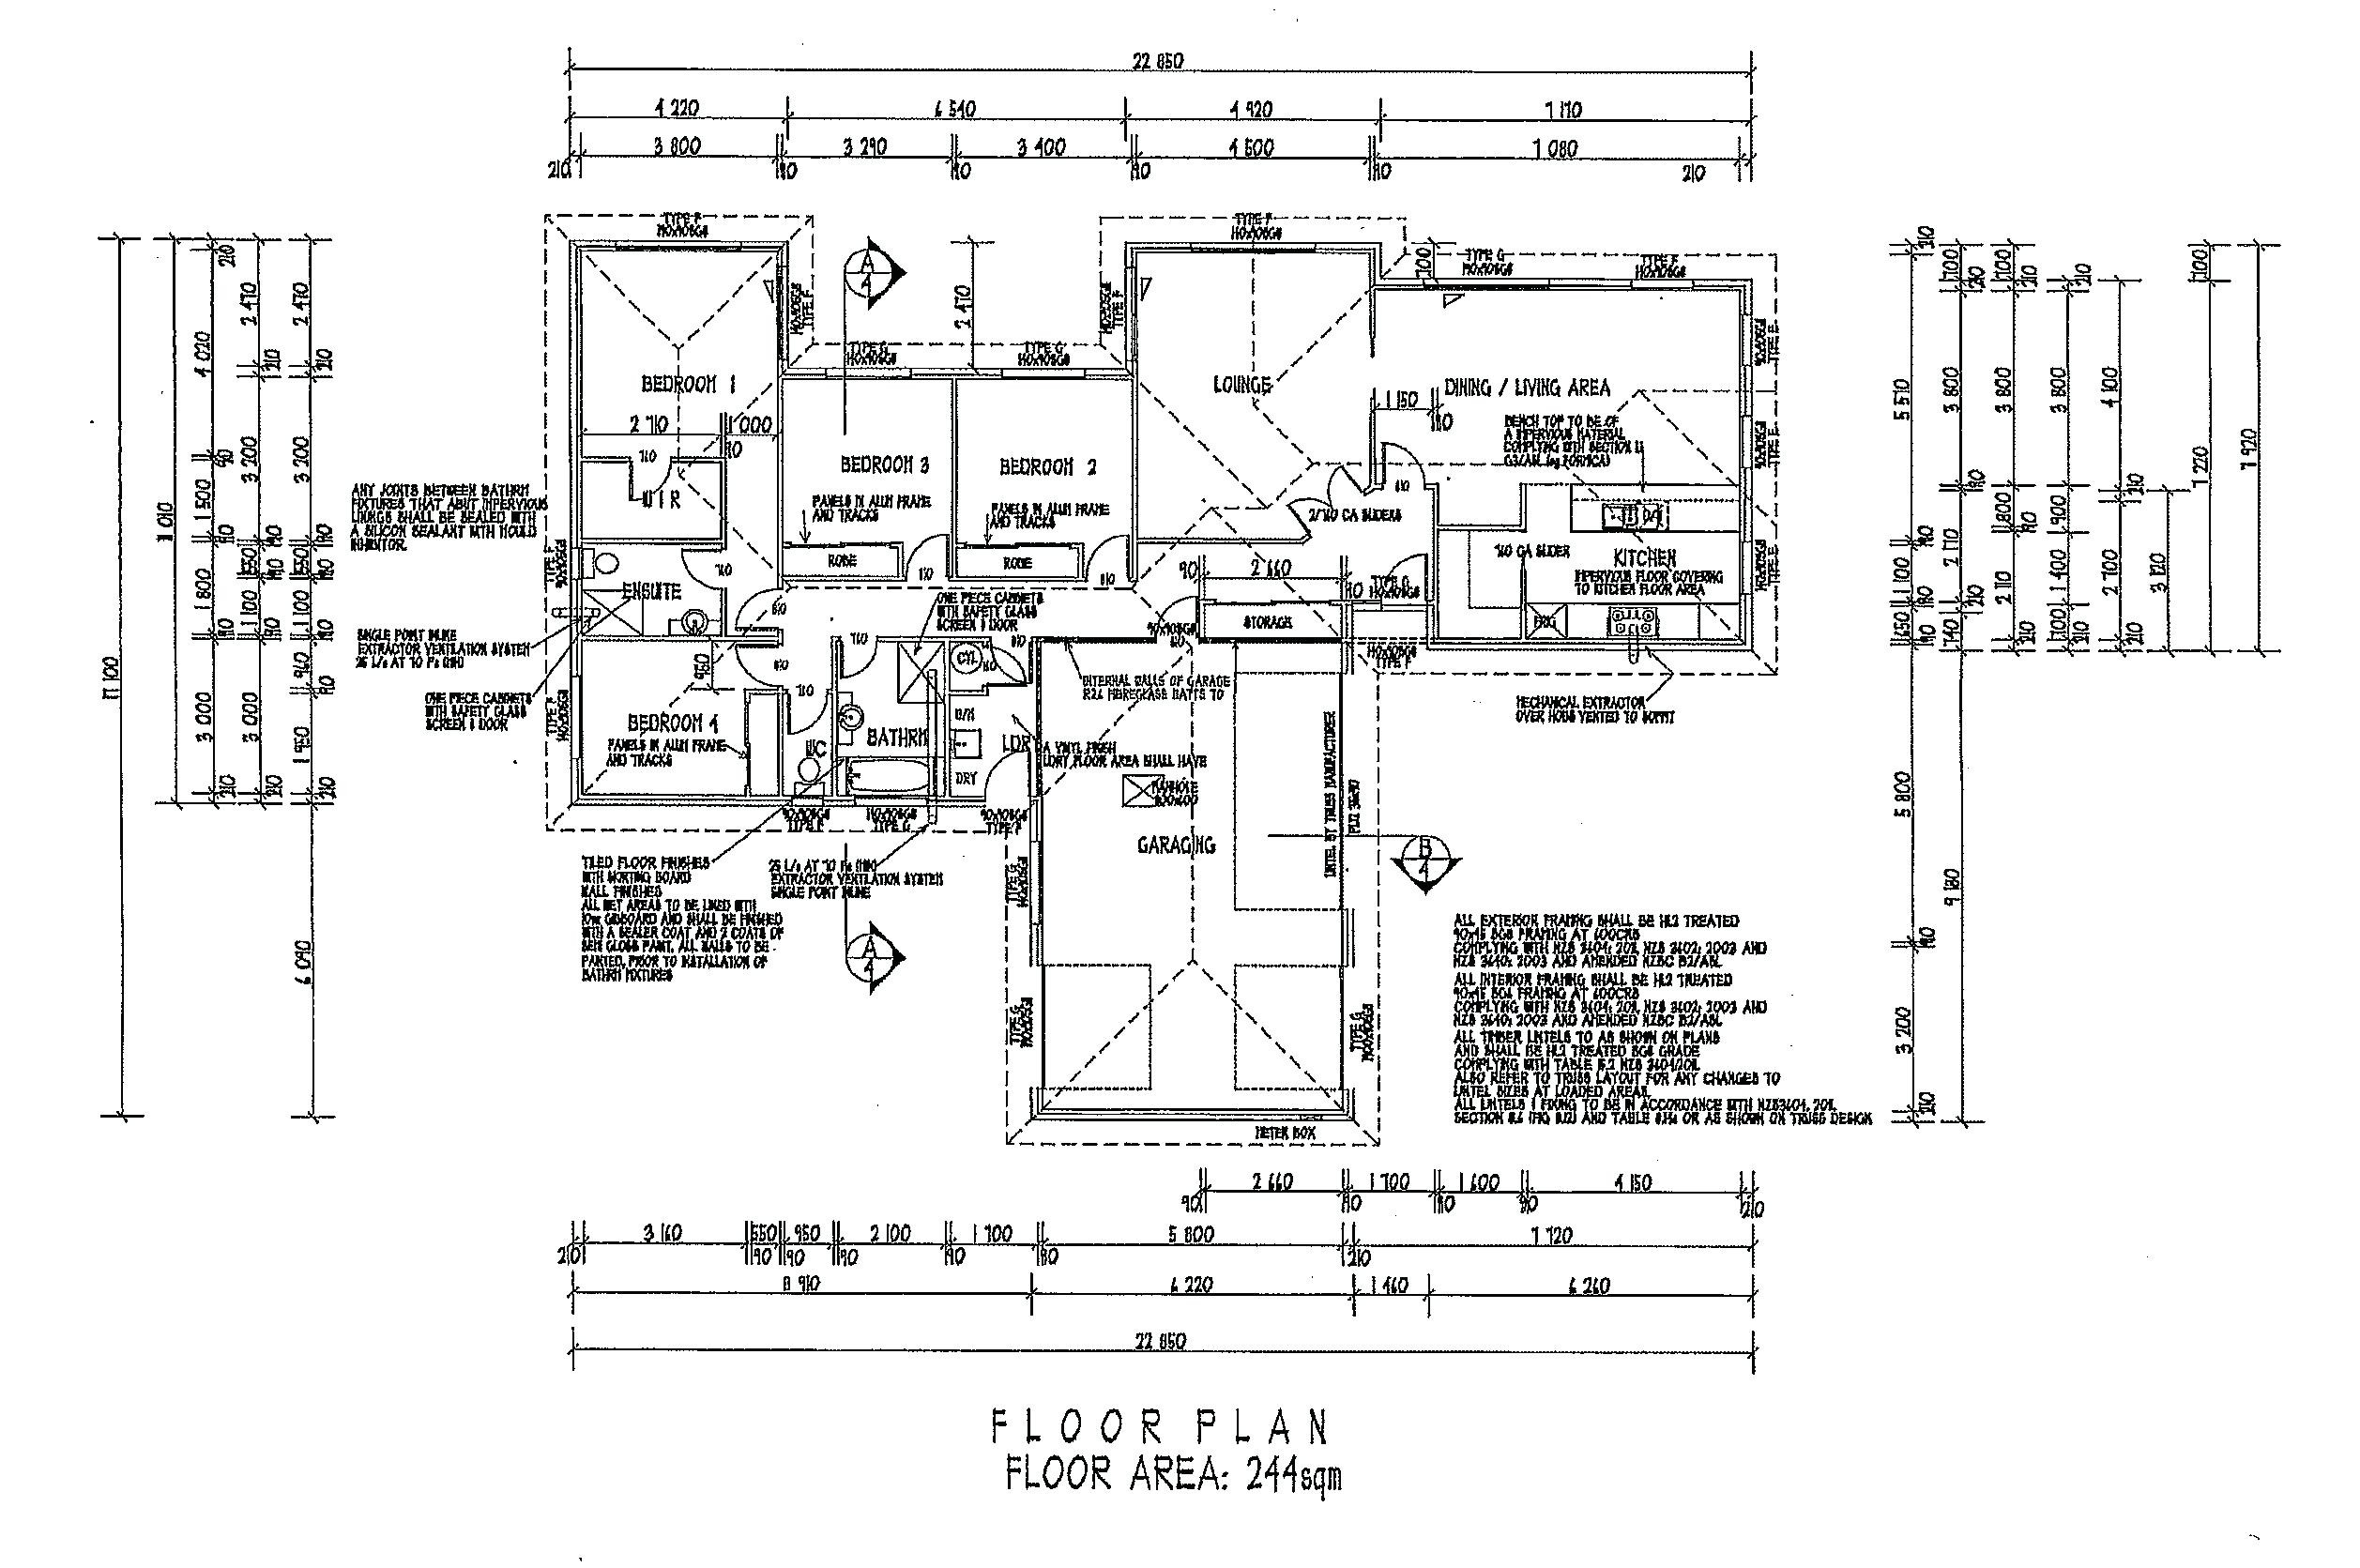 Wiring Diagram For A 2003 Ford Windstar Auto Electrical 2002 Related With